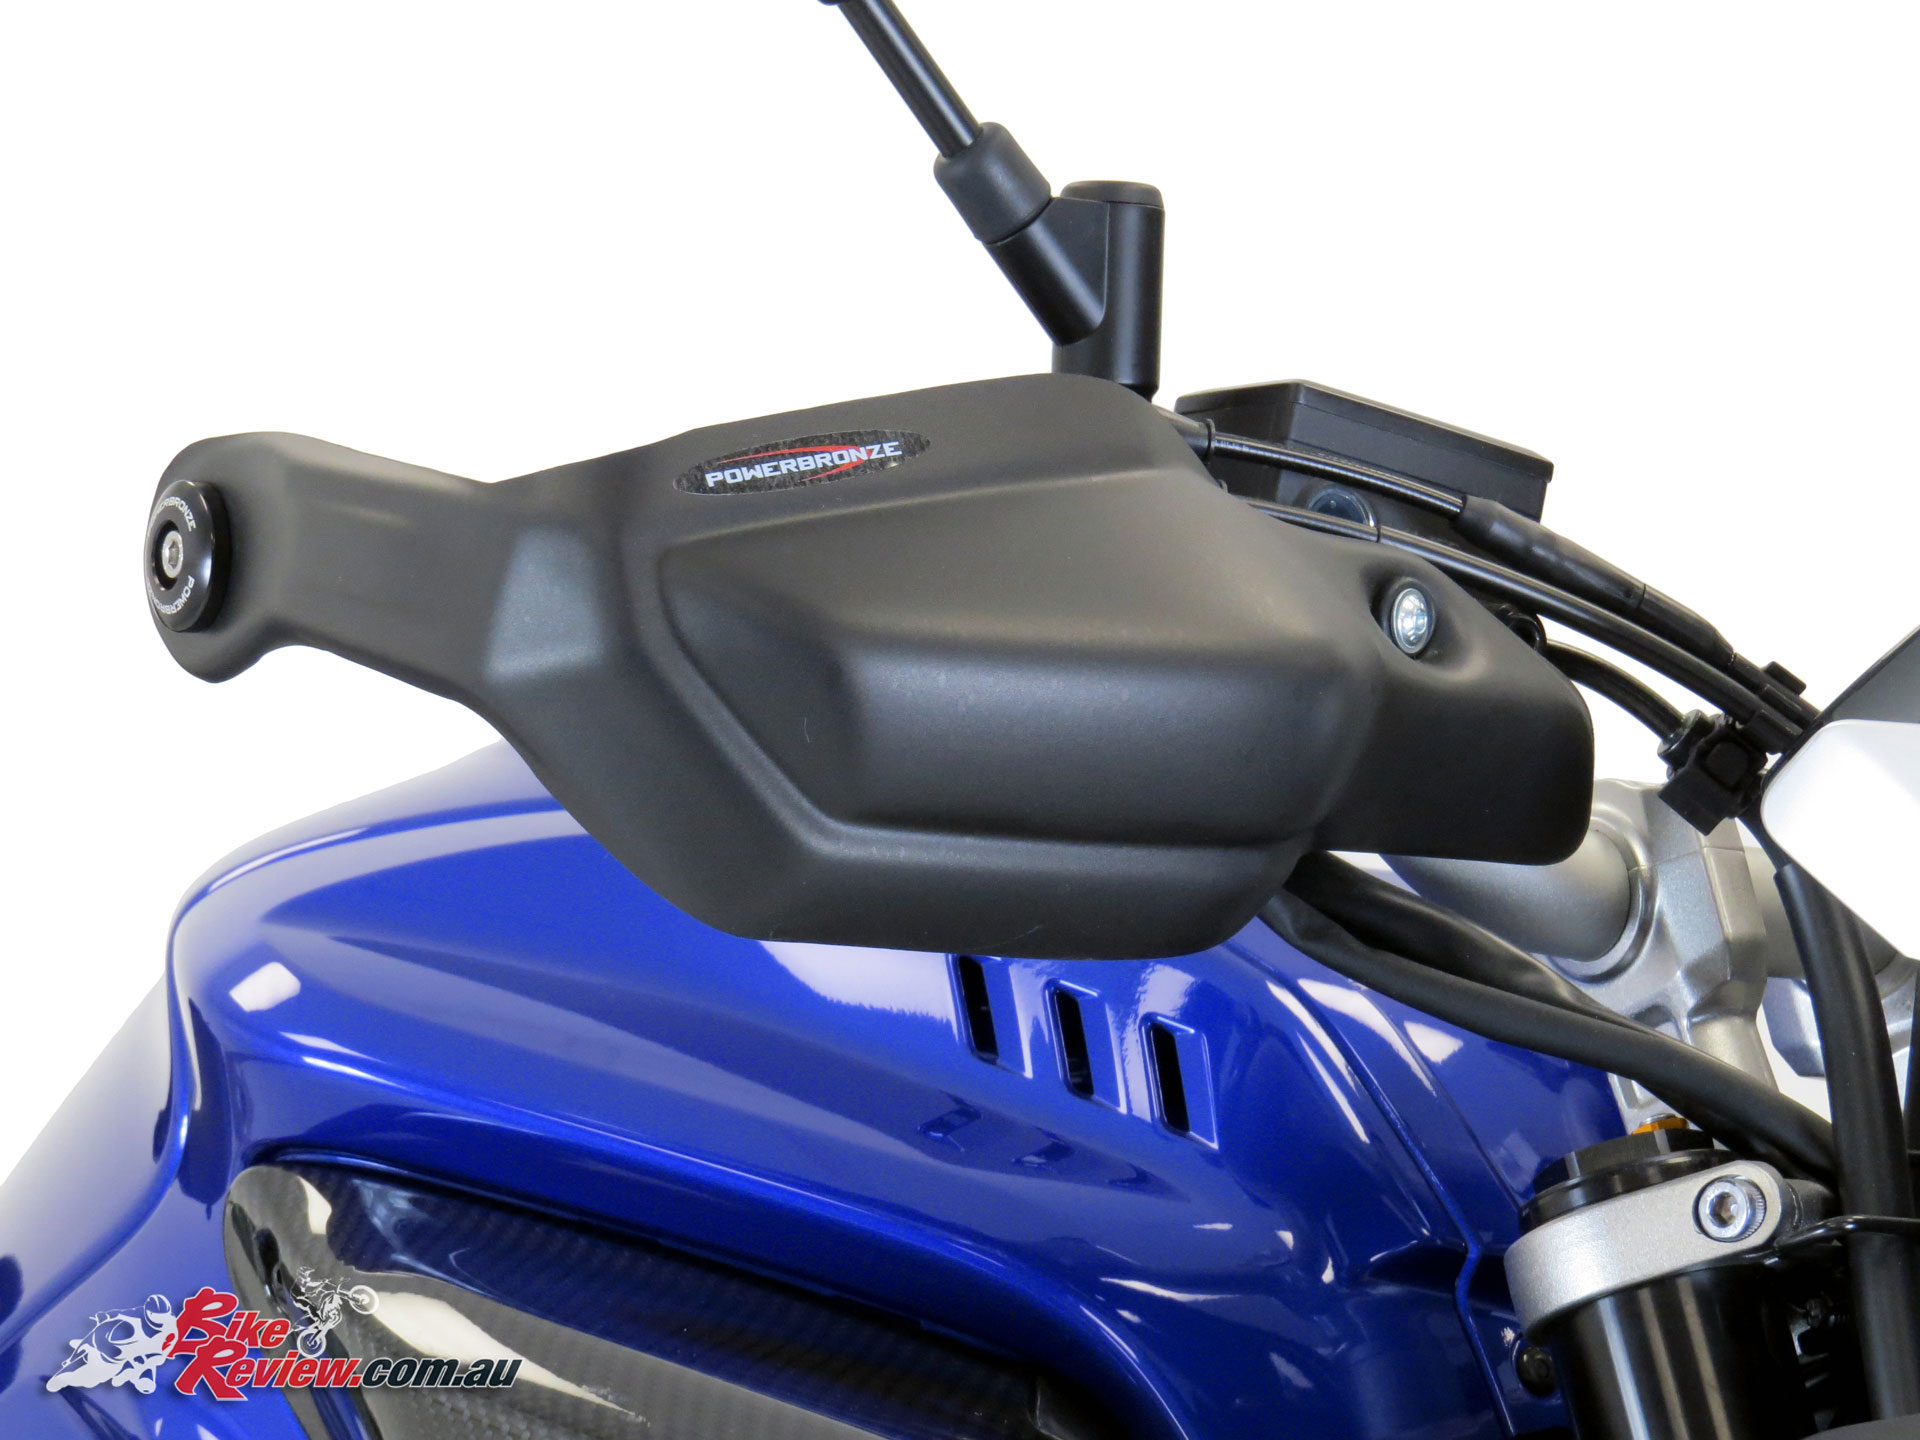 Bmw Mt >> New Product: Powerbronze Hand Guards - Bike Review